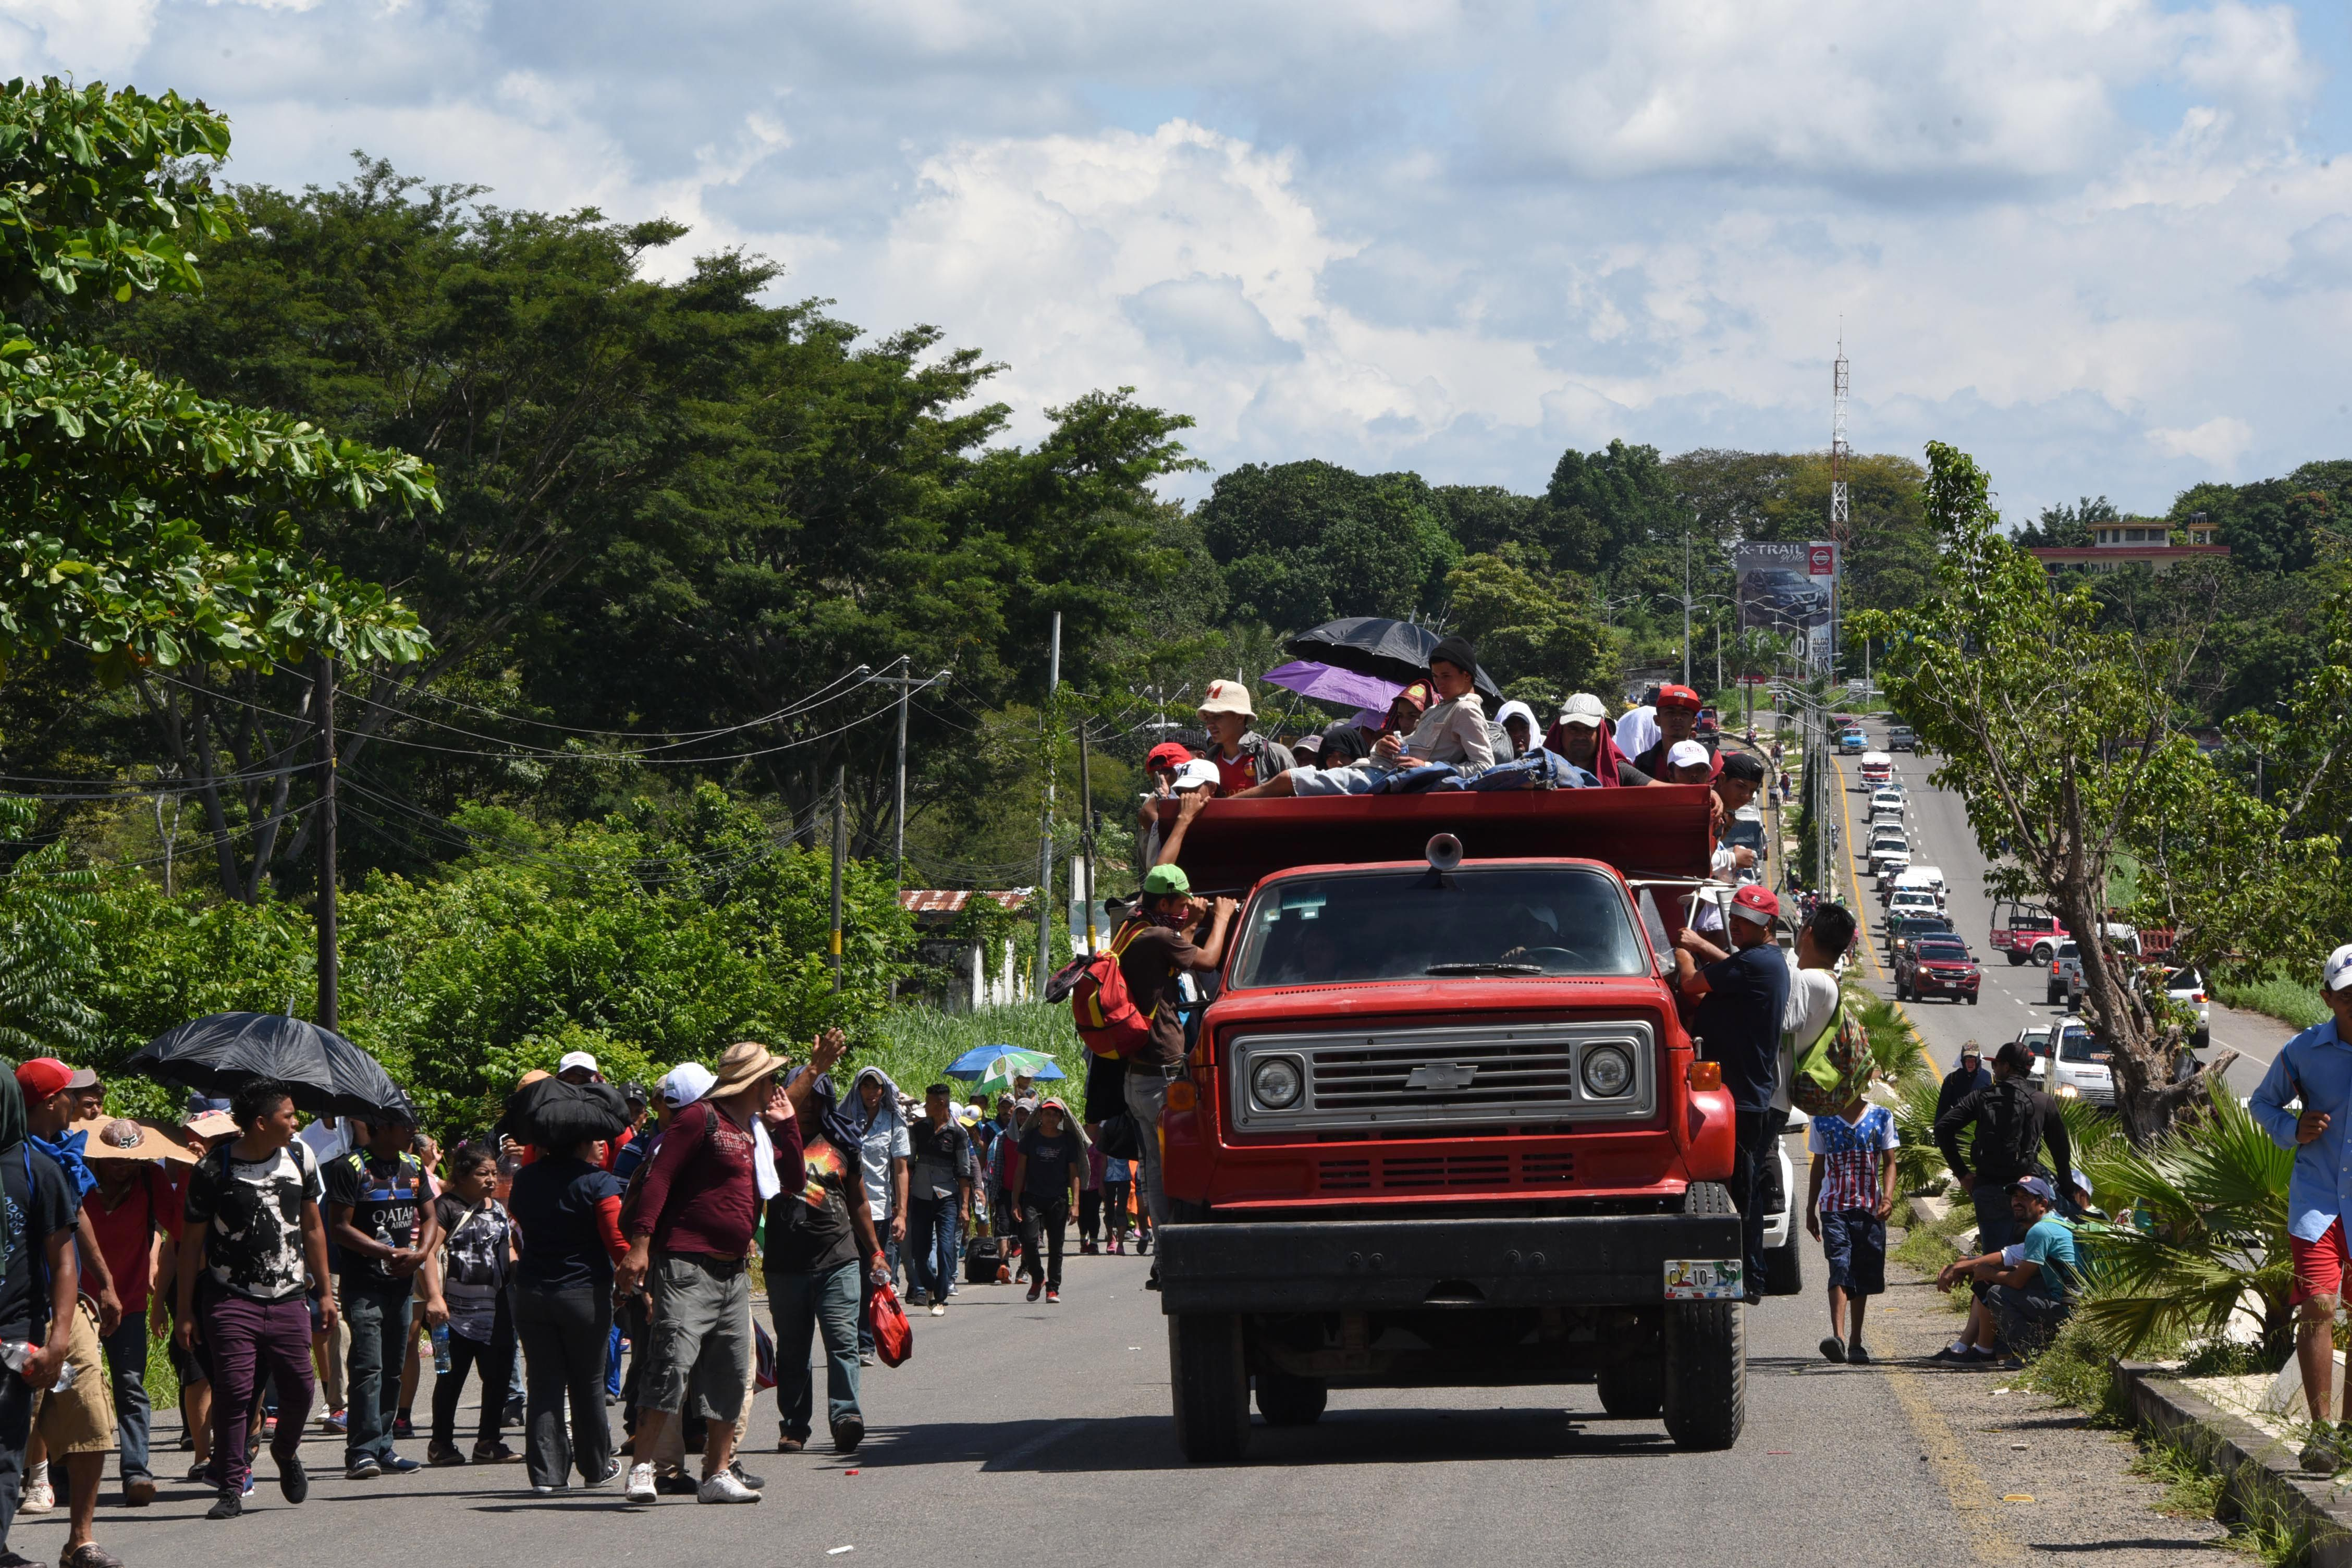 Honduran migrants take part in a caravan heading to the US, in the outskirts of Tapachula, on their way to Huixtla, Chiapas state, Mexico, on October 22, 2018. - President Donald Trump on Monday called the migrant caravan heading toward the US-Mexico border a national emergency, saying he has alerted the US border patrol and military. (Photo: JOHAN ORDONEZ/AFP/Getty Images)